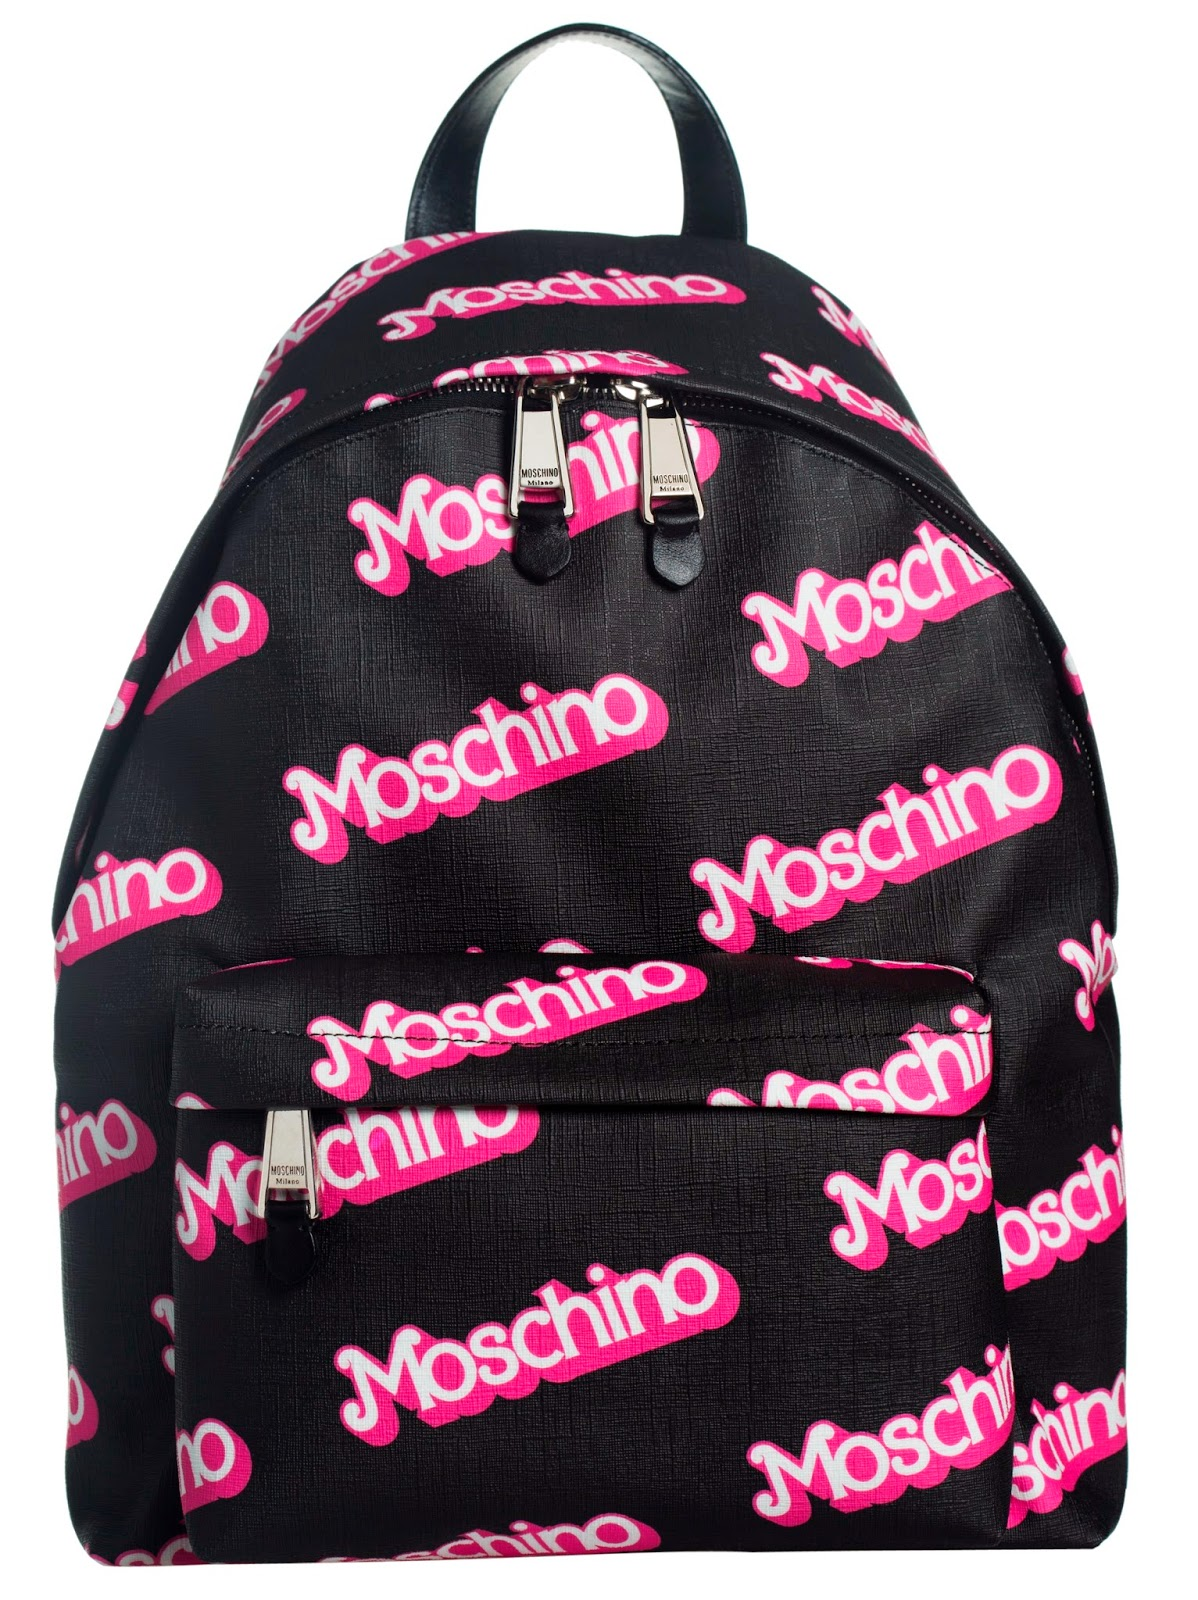 Moschino Pink Inspired Backpacks